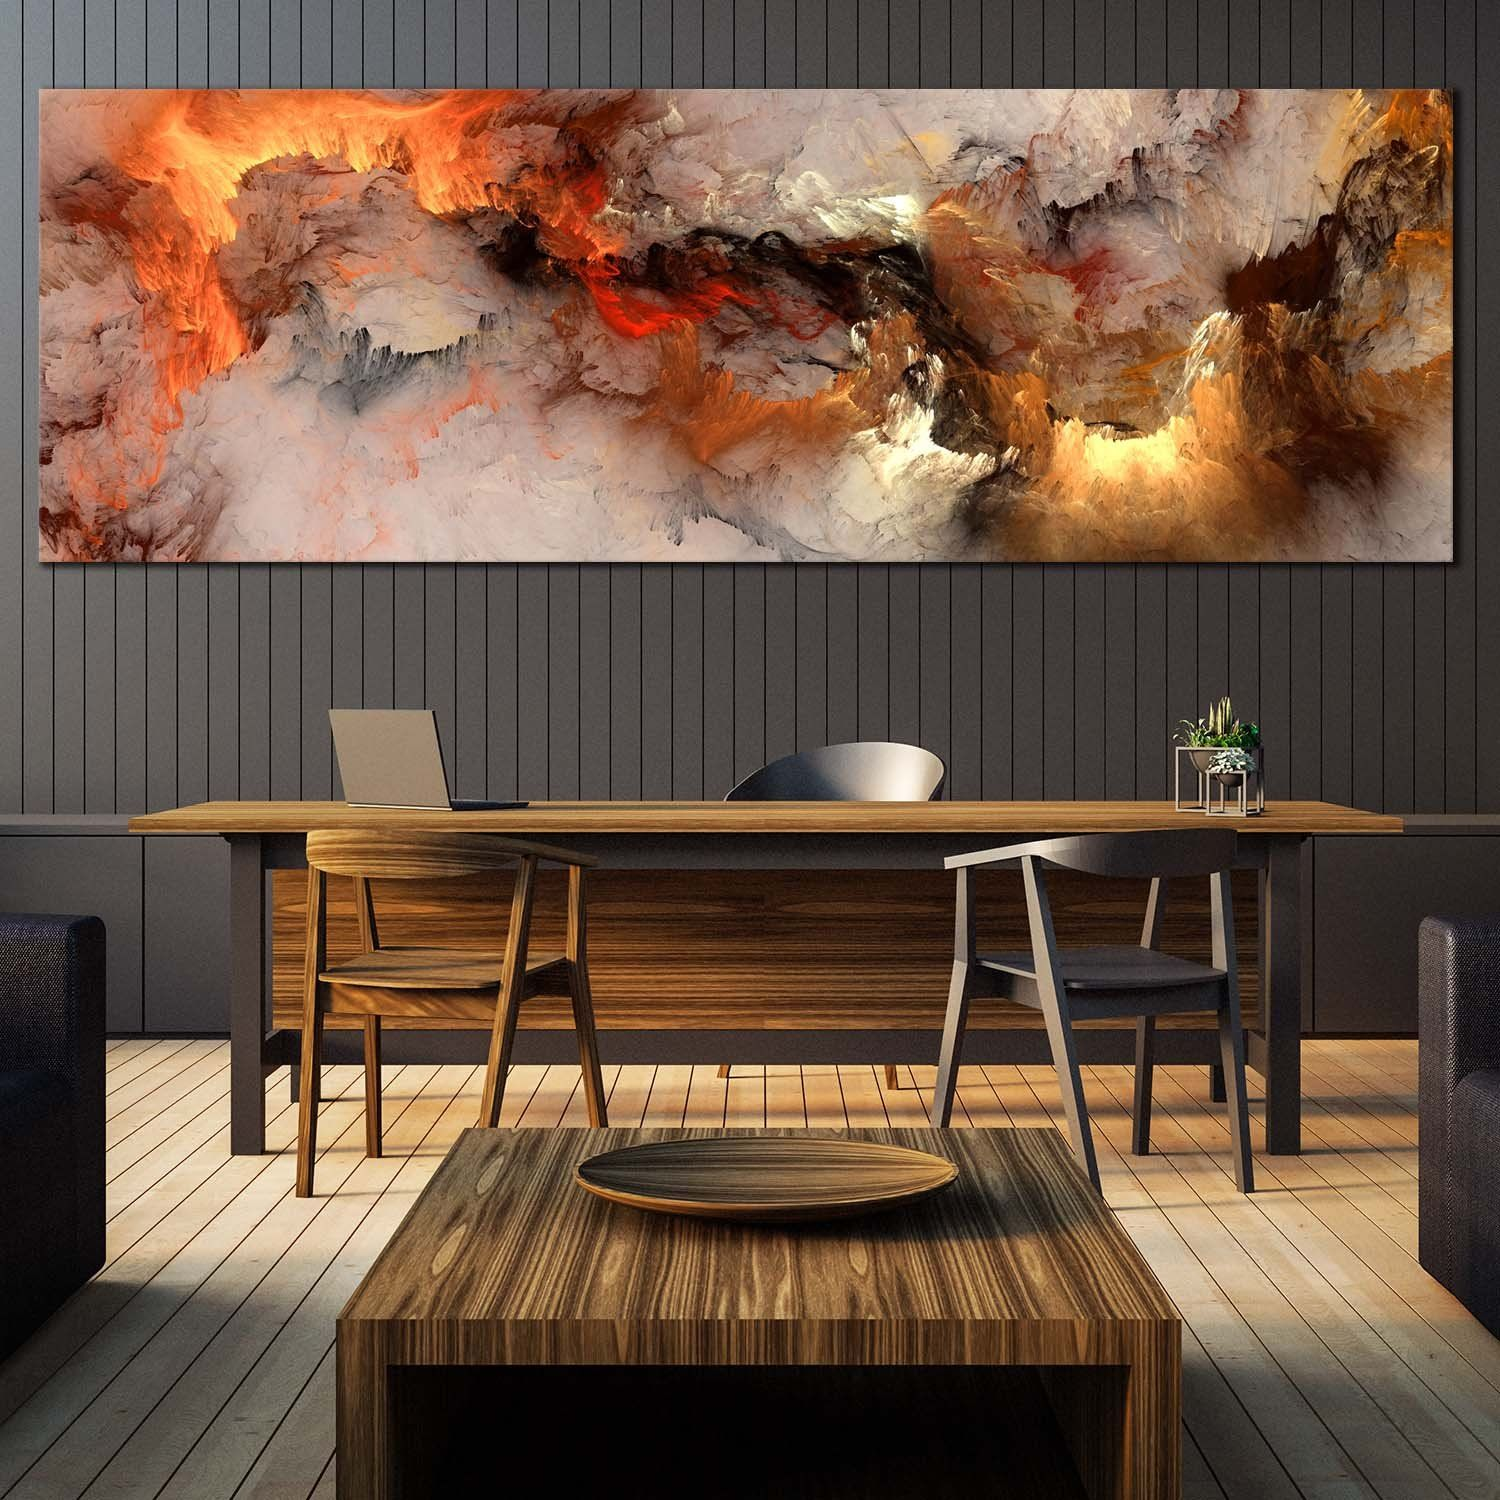 Fractal Abstract Canvas Wall Art Orange White Smoke Texture